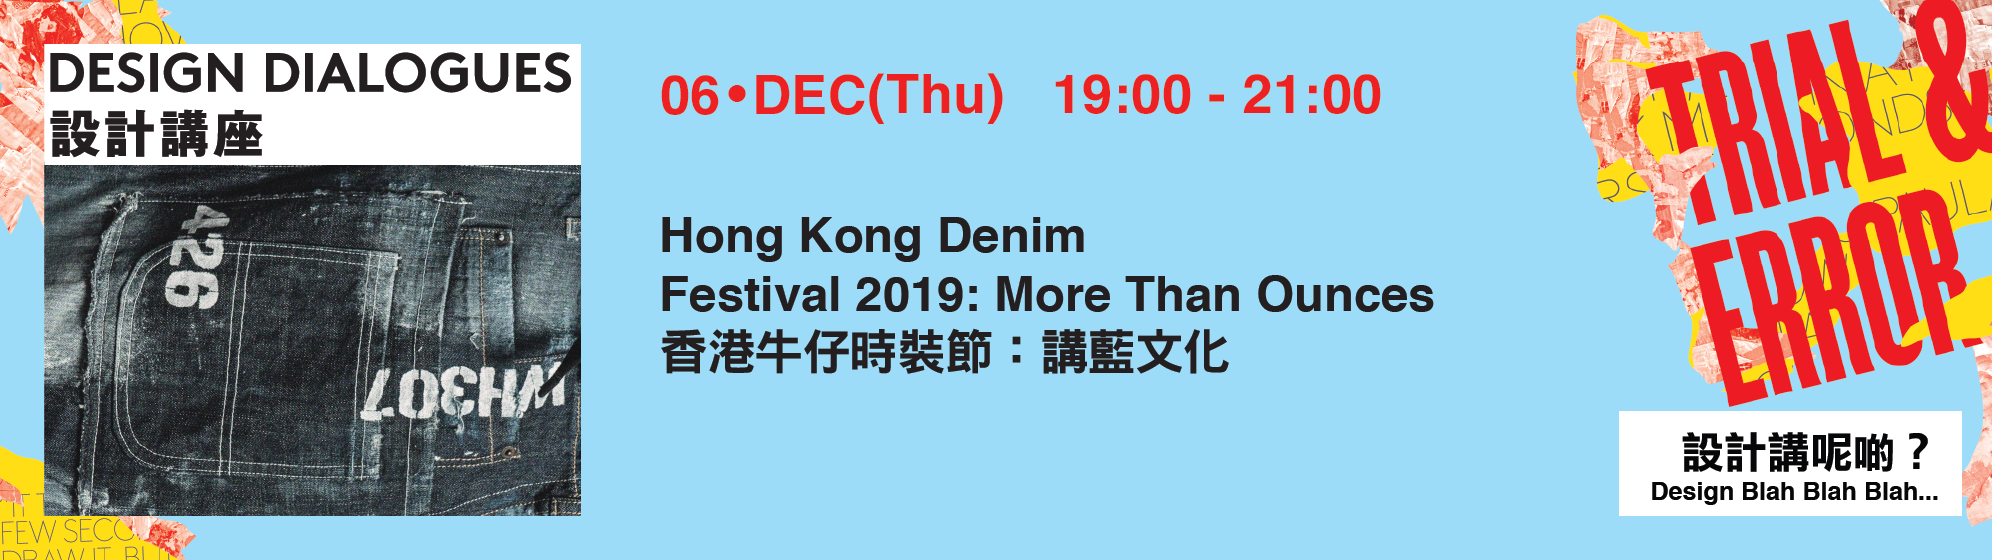 香港牛仔時裝節:講藍文化 | Hong Kong Denim Festival 2019: More Than Ounces